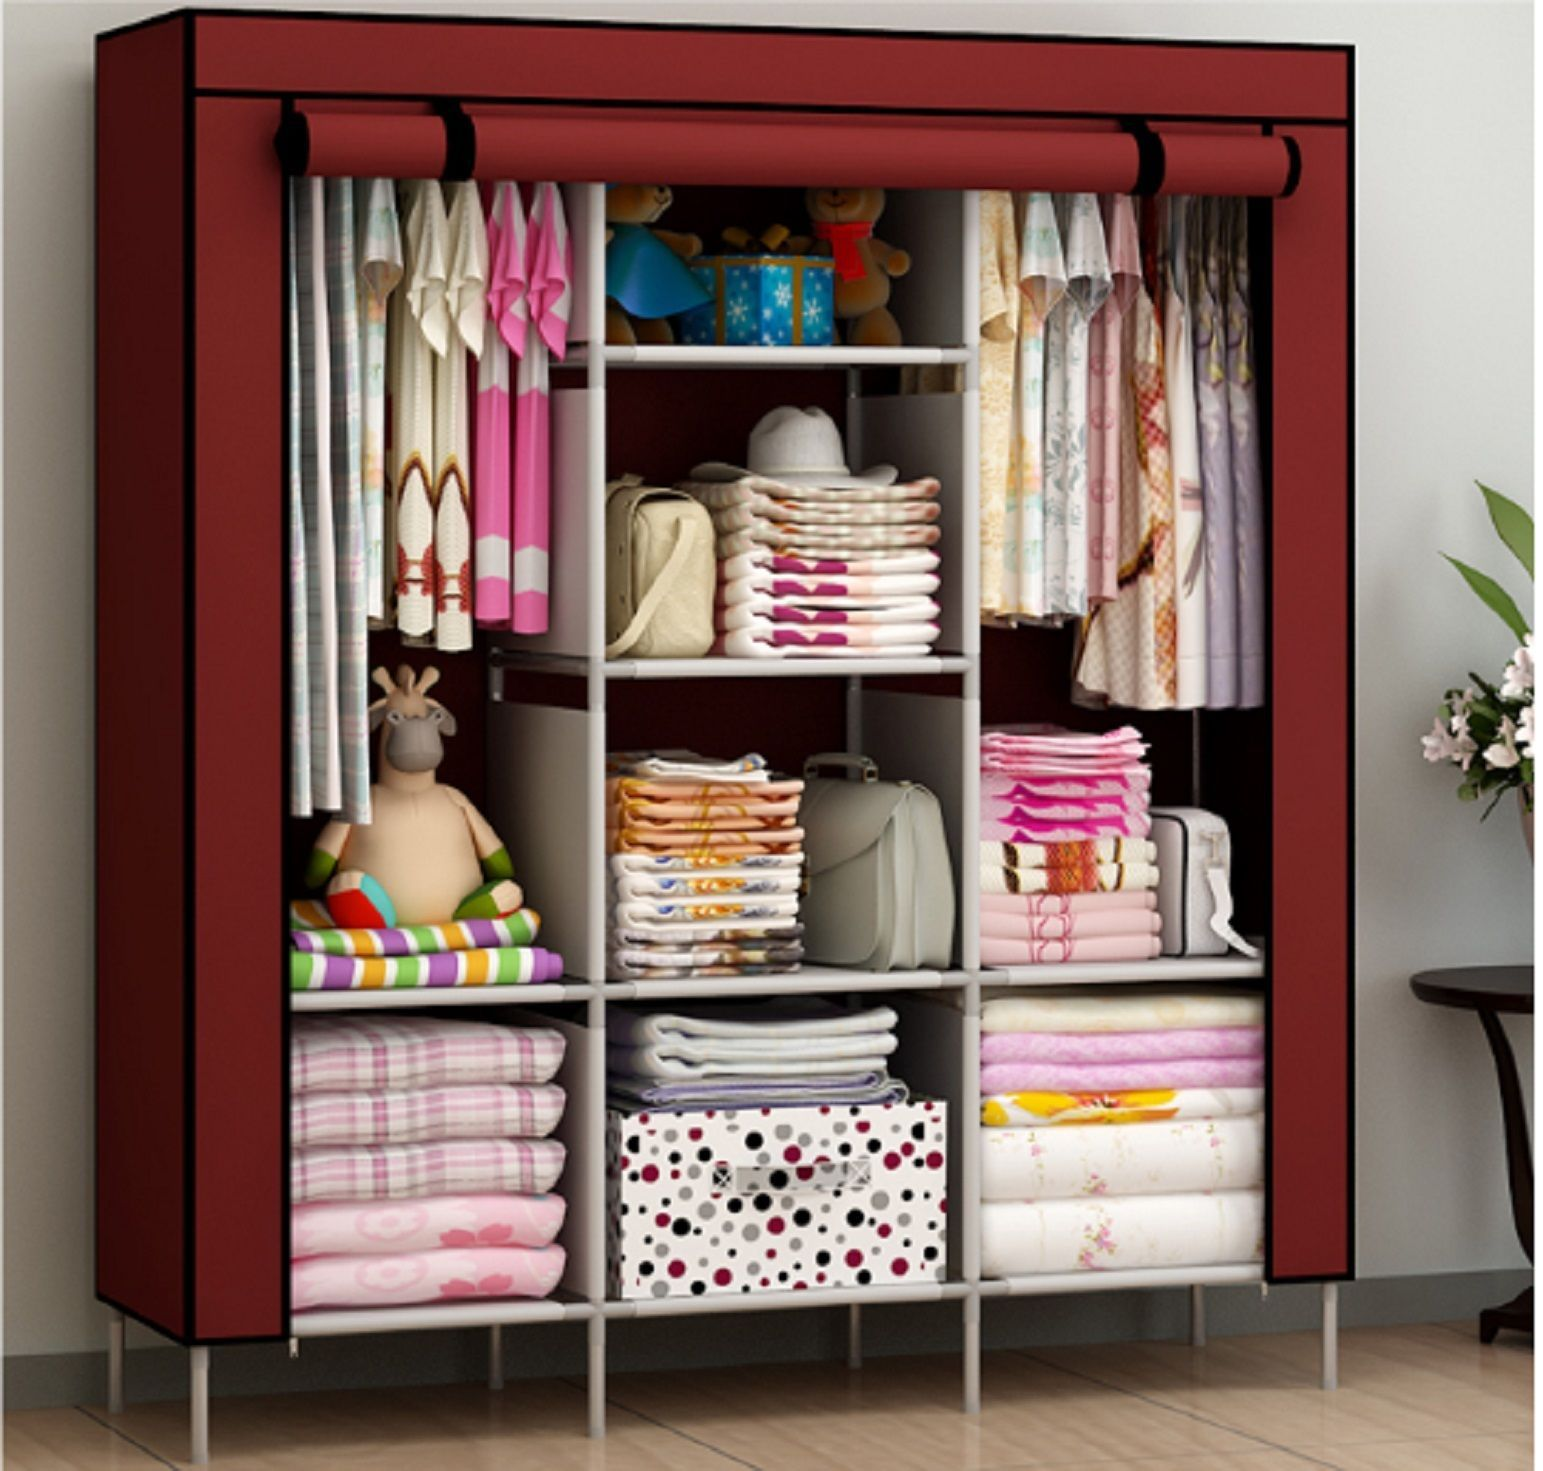 New Portable Bedroom Furniture Clothes Wardrobe Closet Storage Cabinet Armoires Ebay